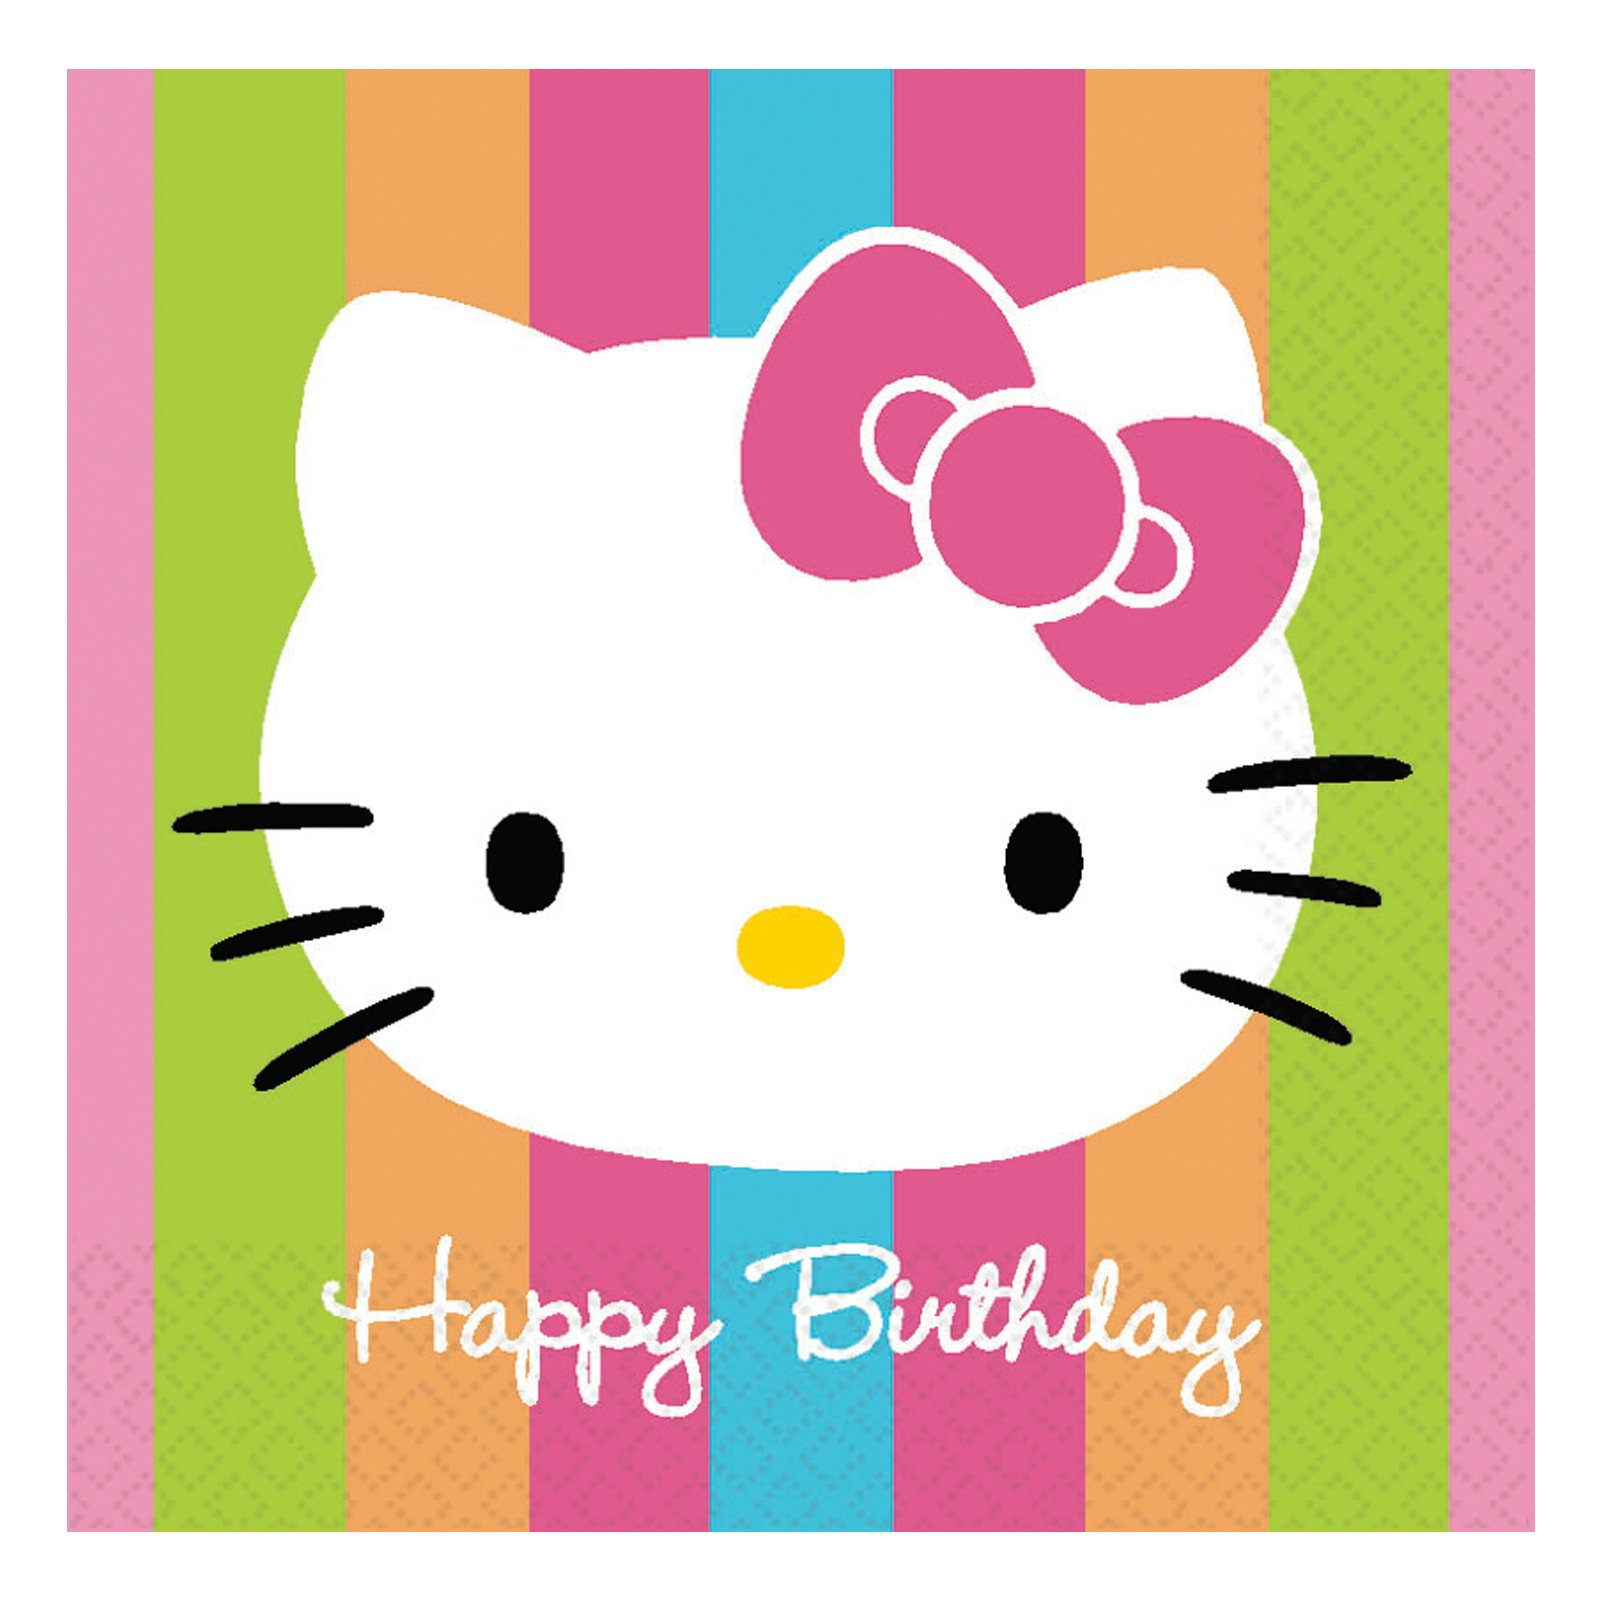 Simple Wallpaper Hello Kitty Android - hello%2Bkitty%2Bwallpaper%2Bbirthday  Collection_100656.jpg